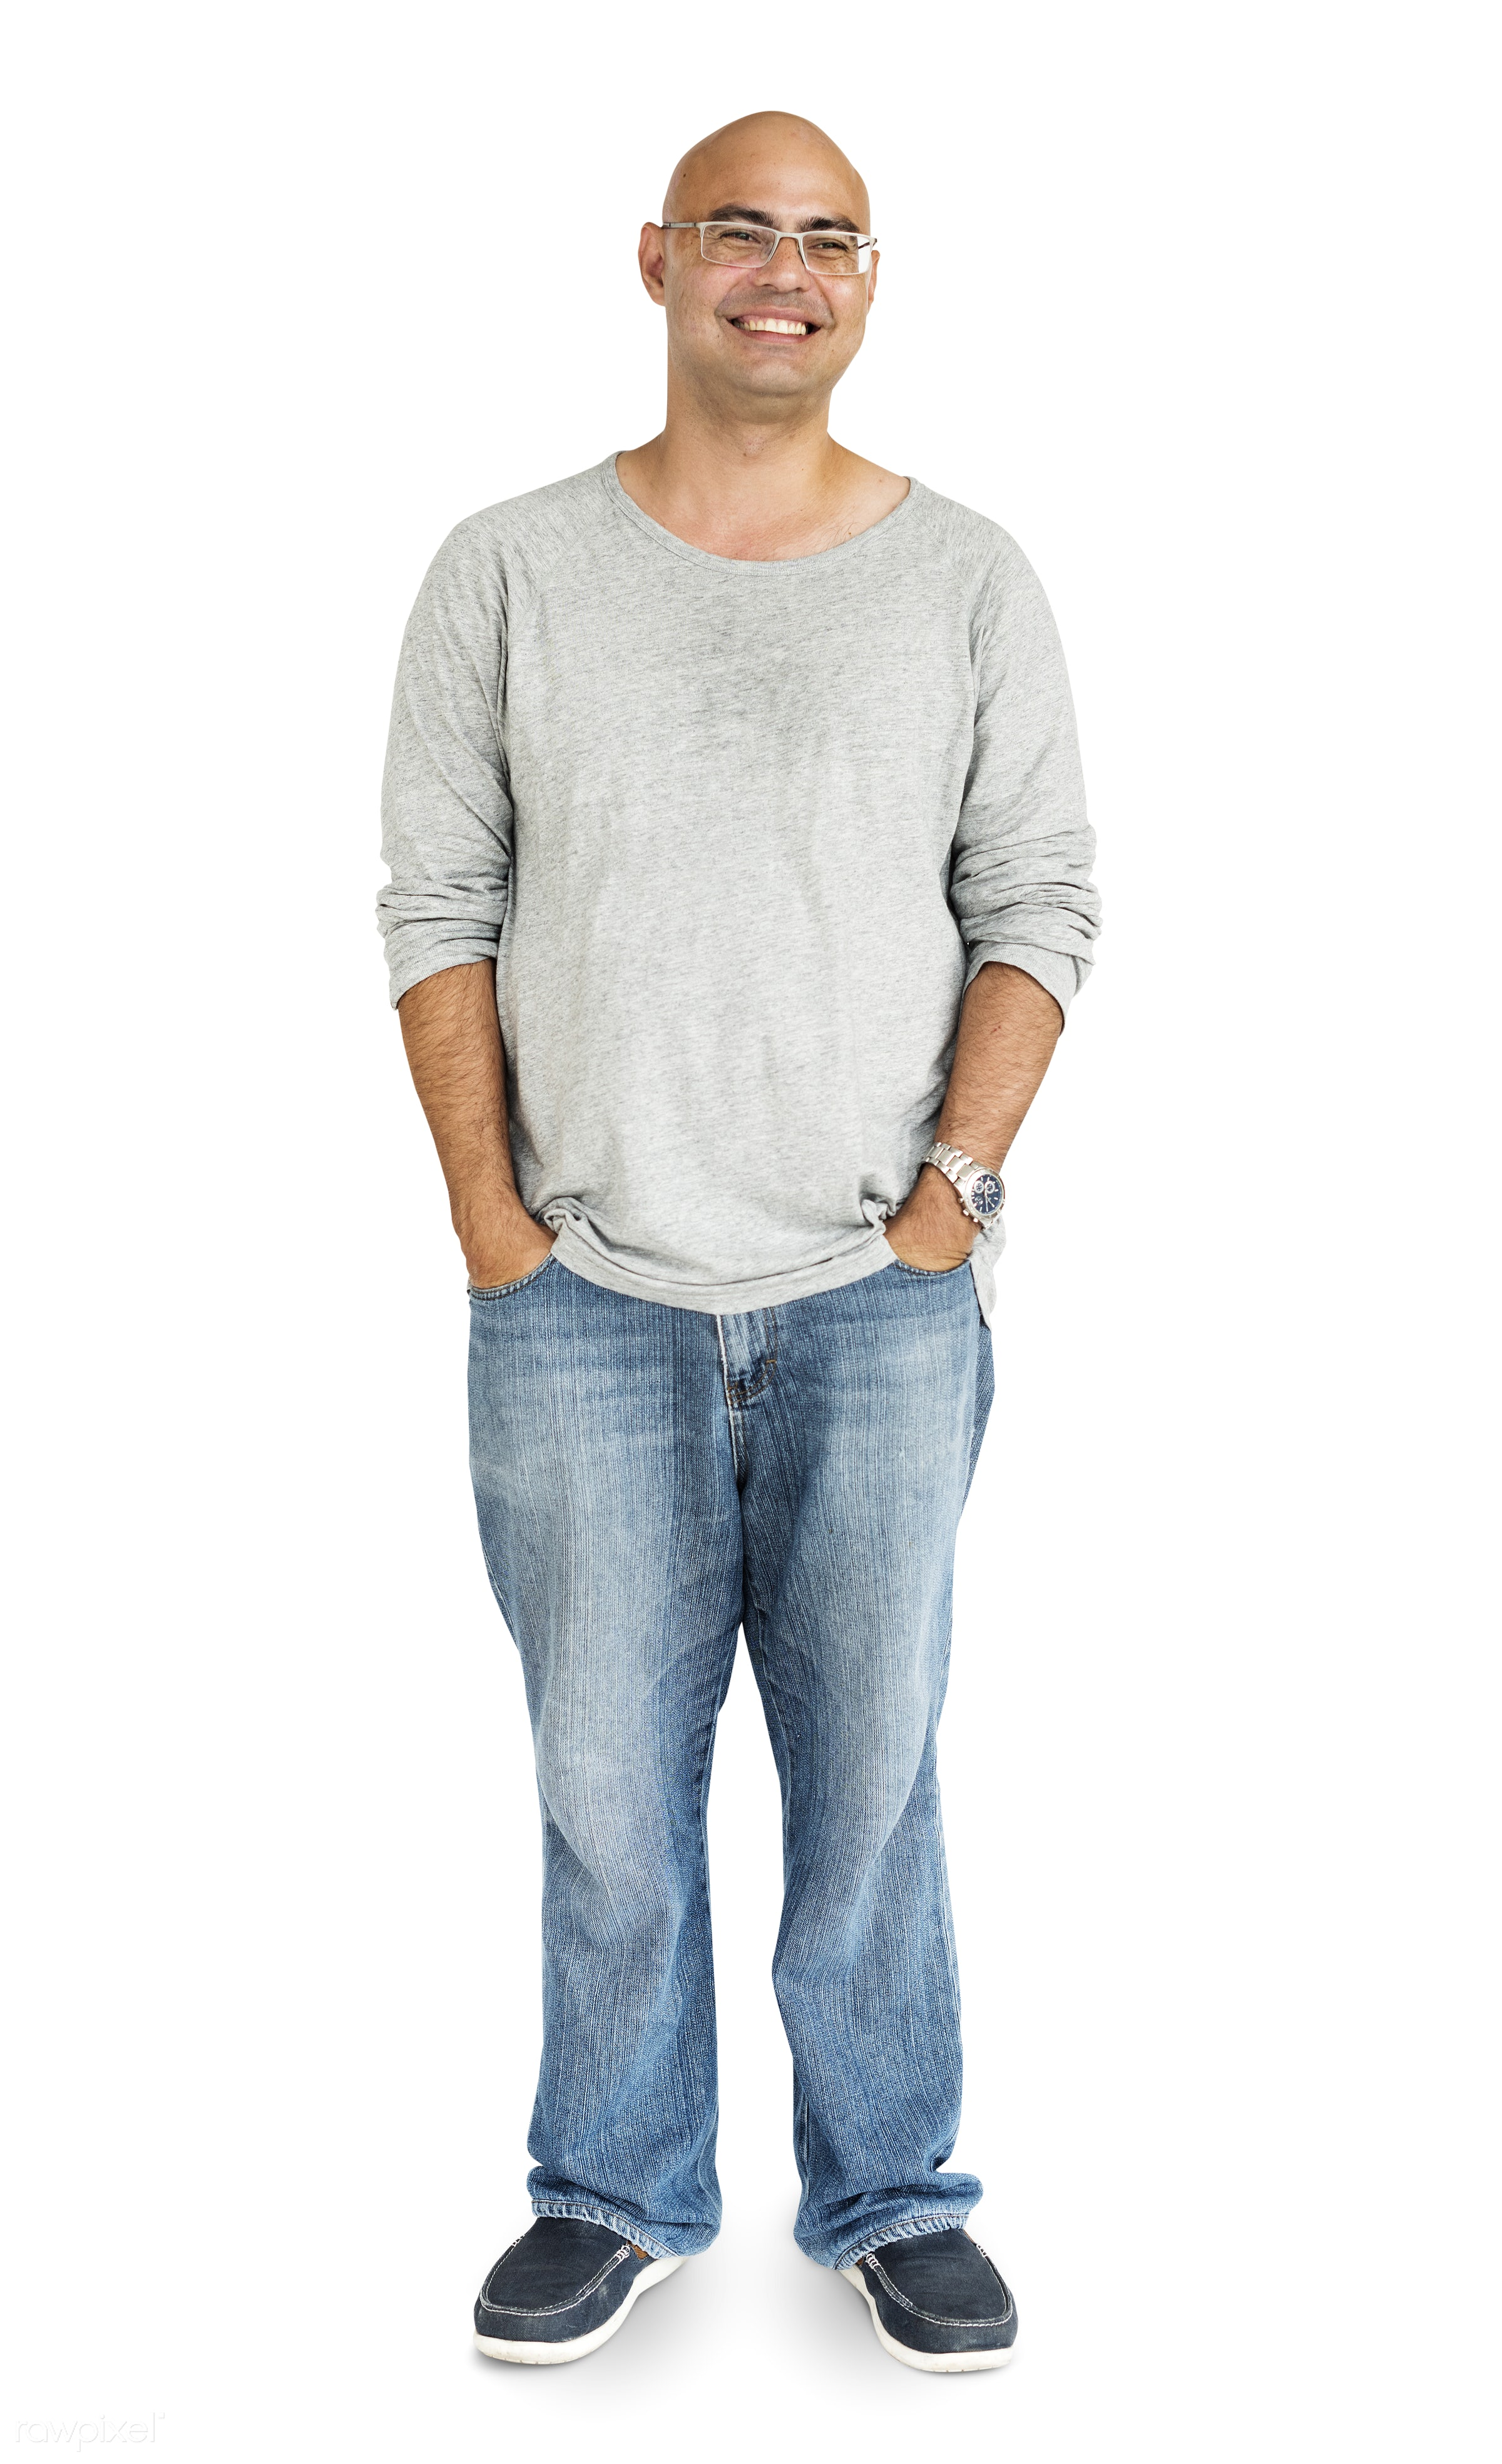 studio, expression, person, model, full length, isolated on white, optimistic, race, people, positivity, style, casual,...